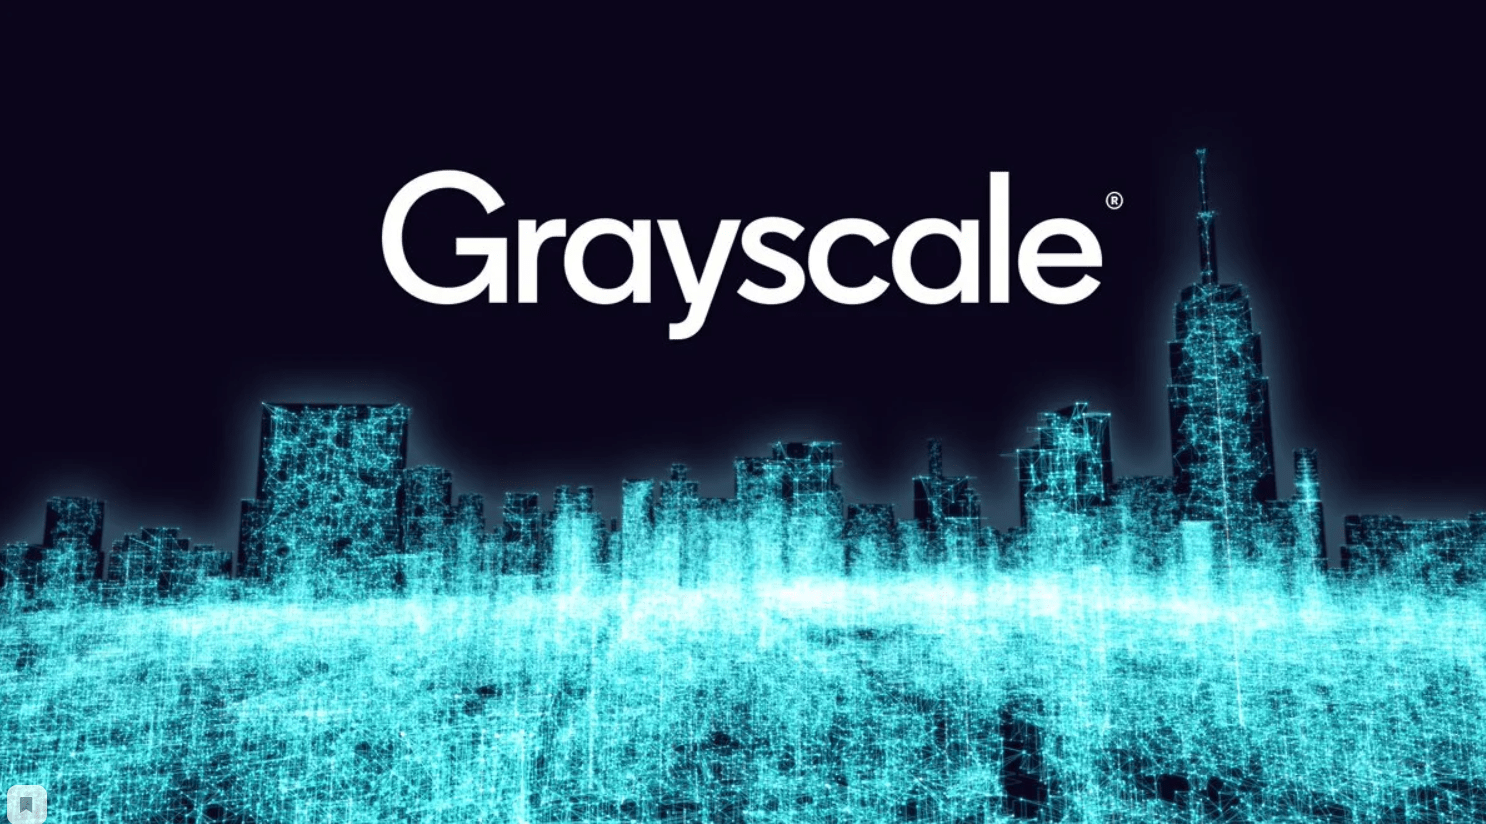 Grayscale capitalization exceeded $ 300 billion